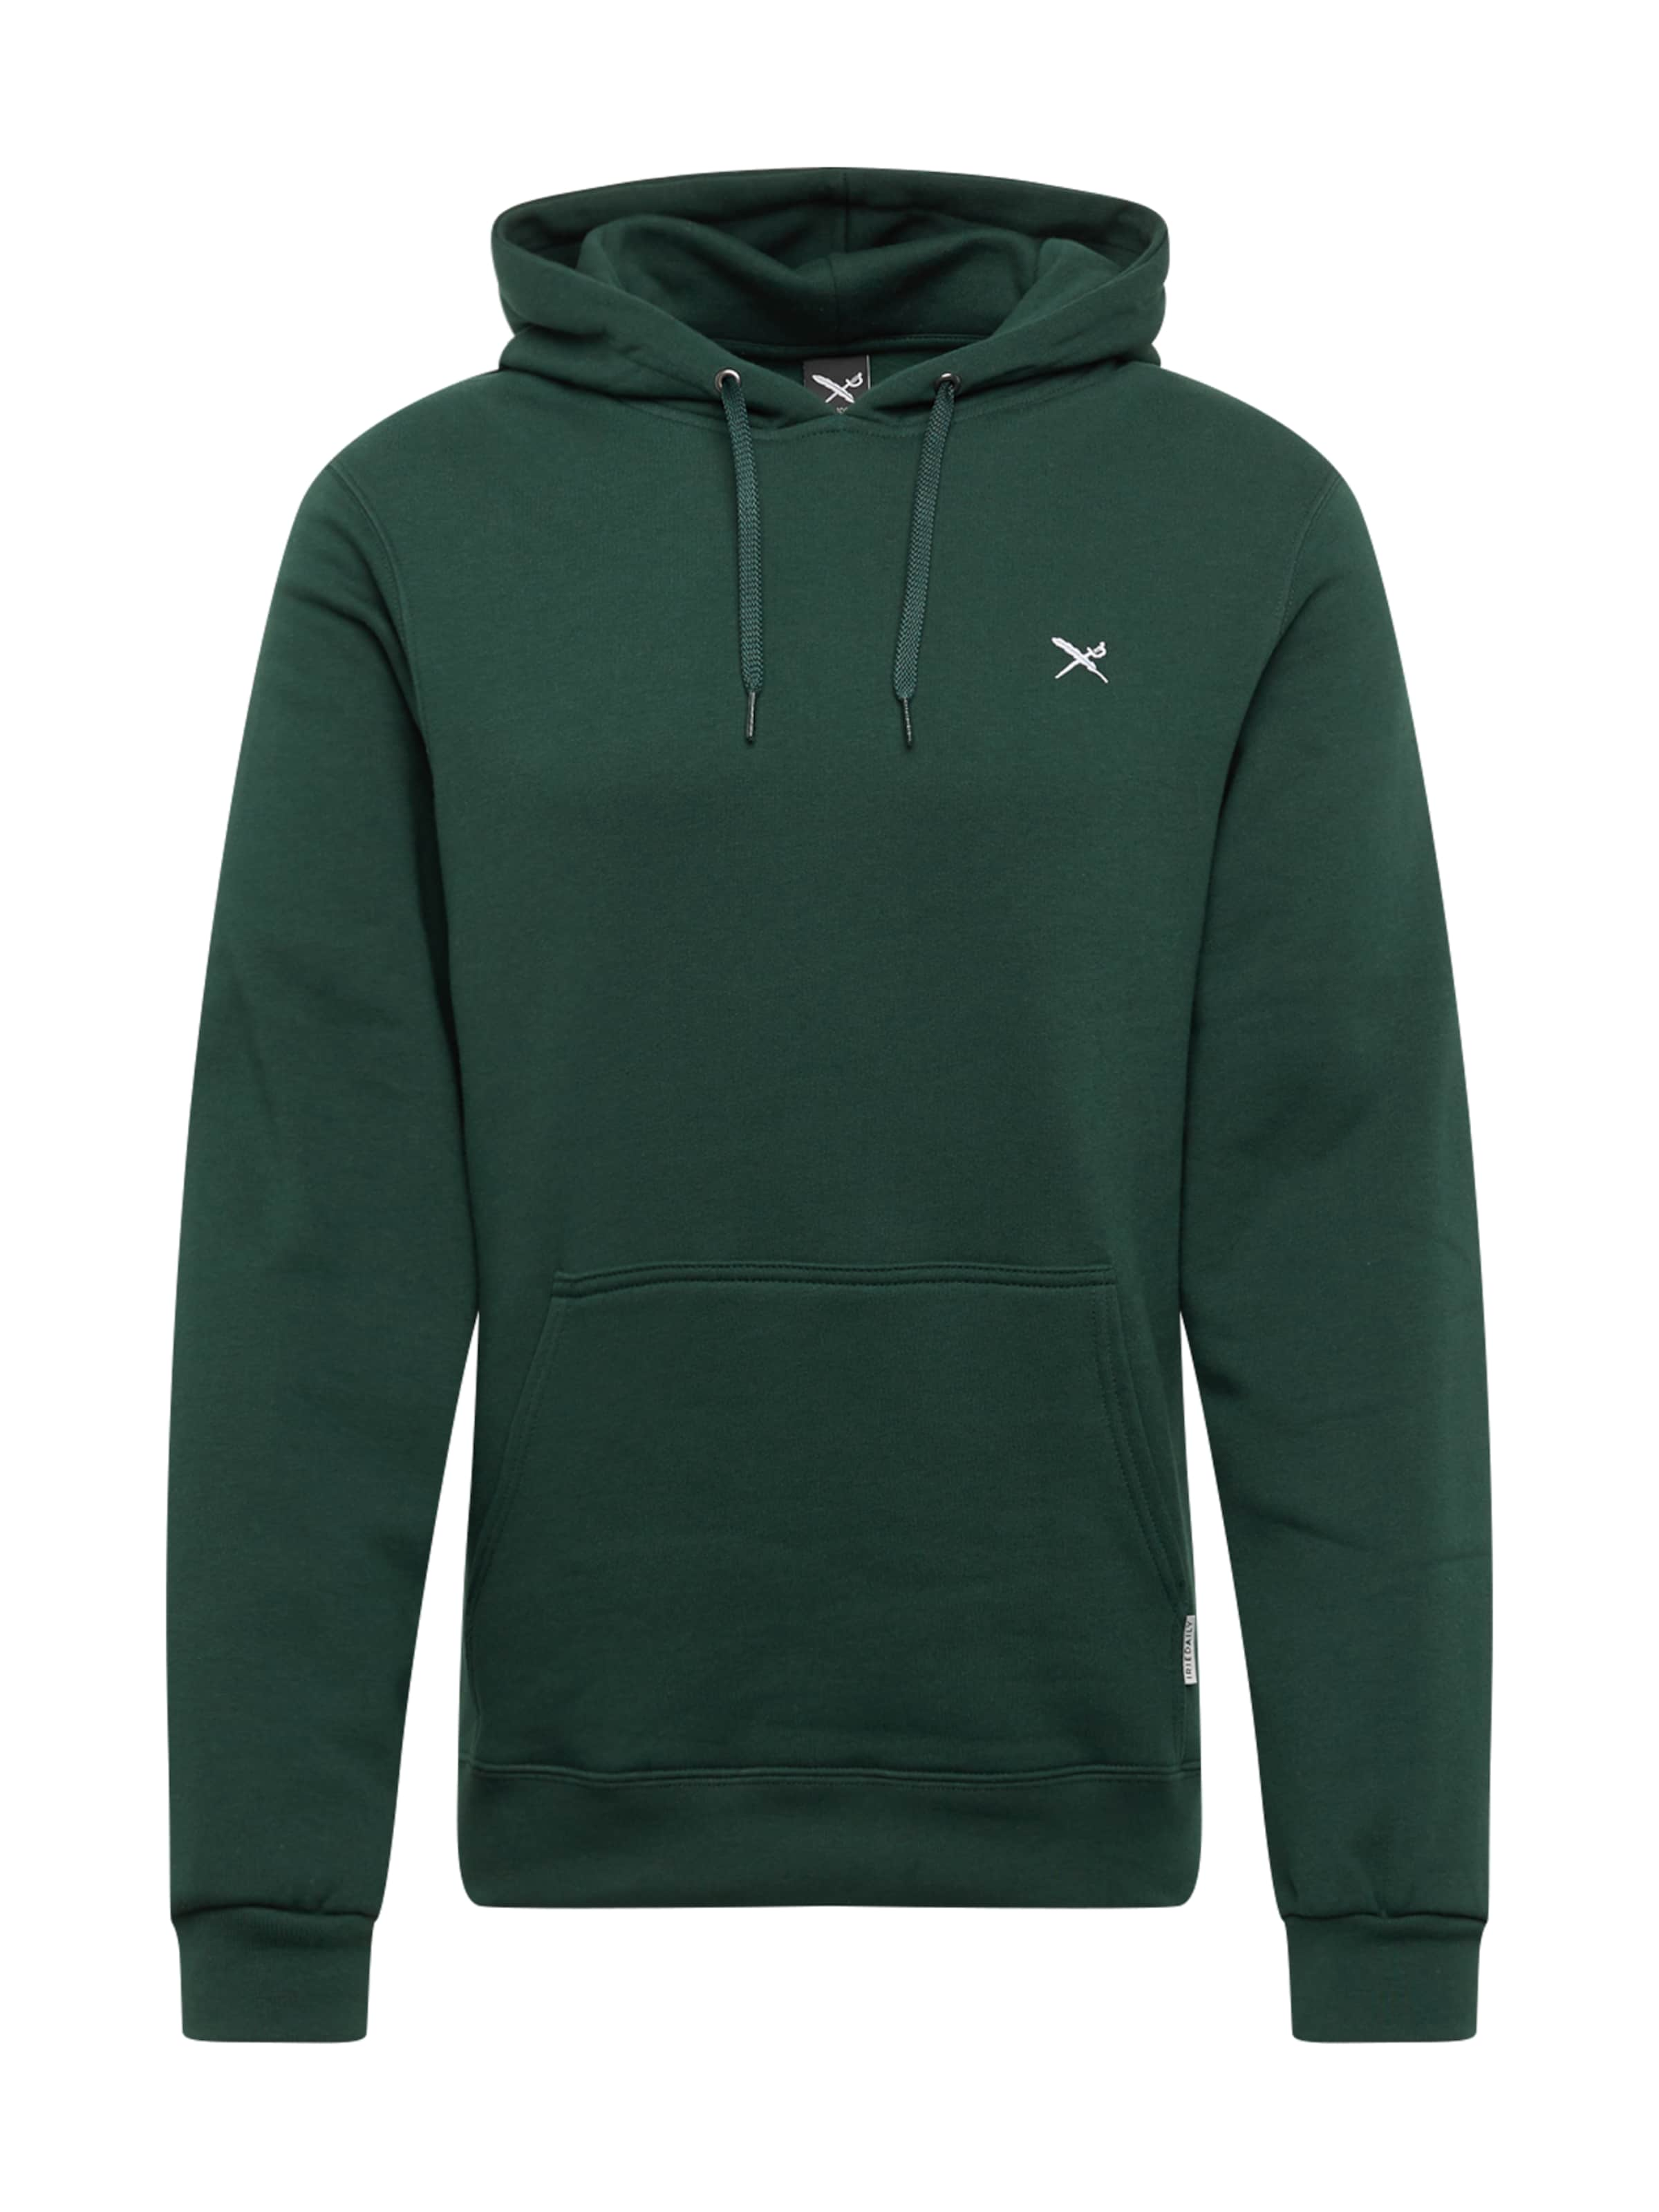 Flag' Vert FoncéBlanc shirt Sweat En Iriedaily 'mini dxthQrsC